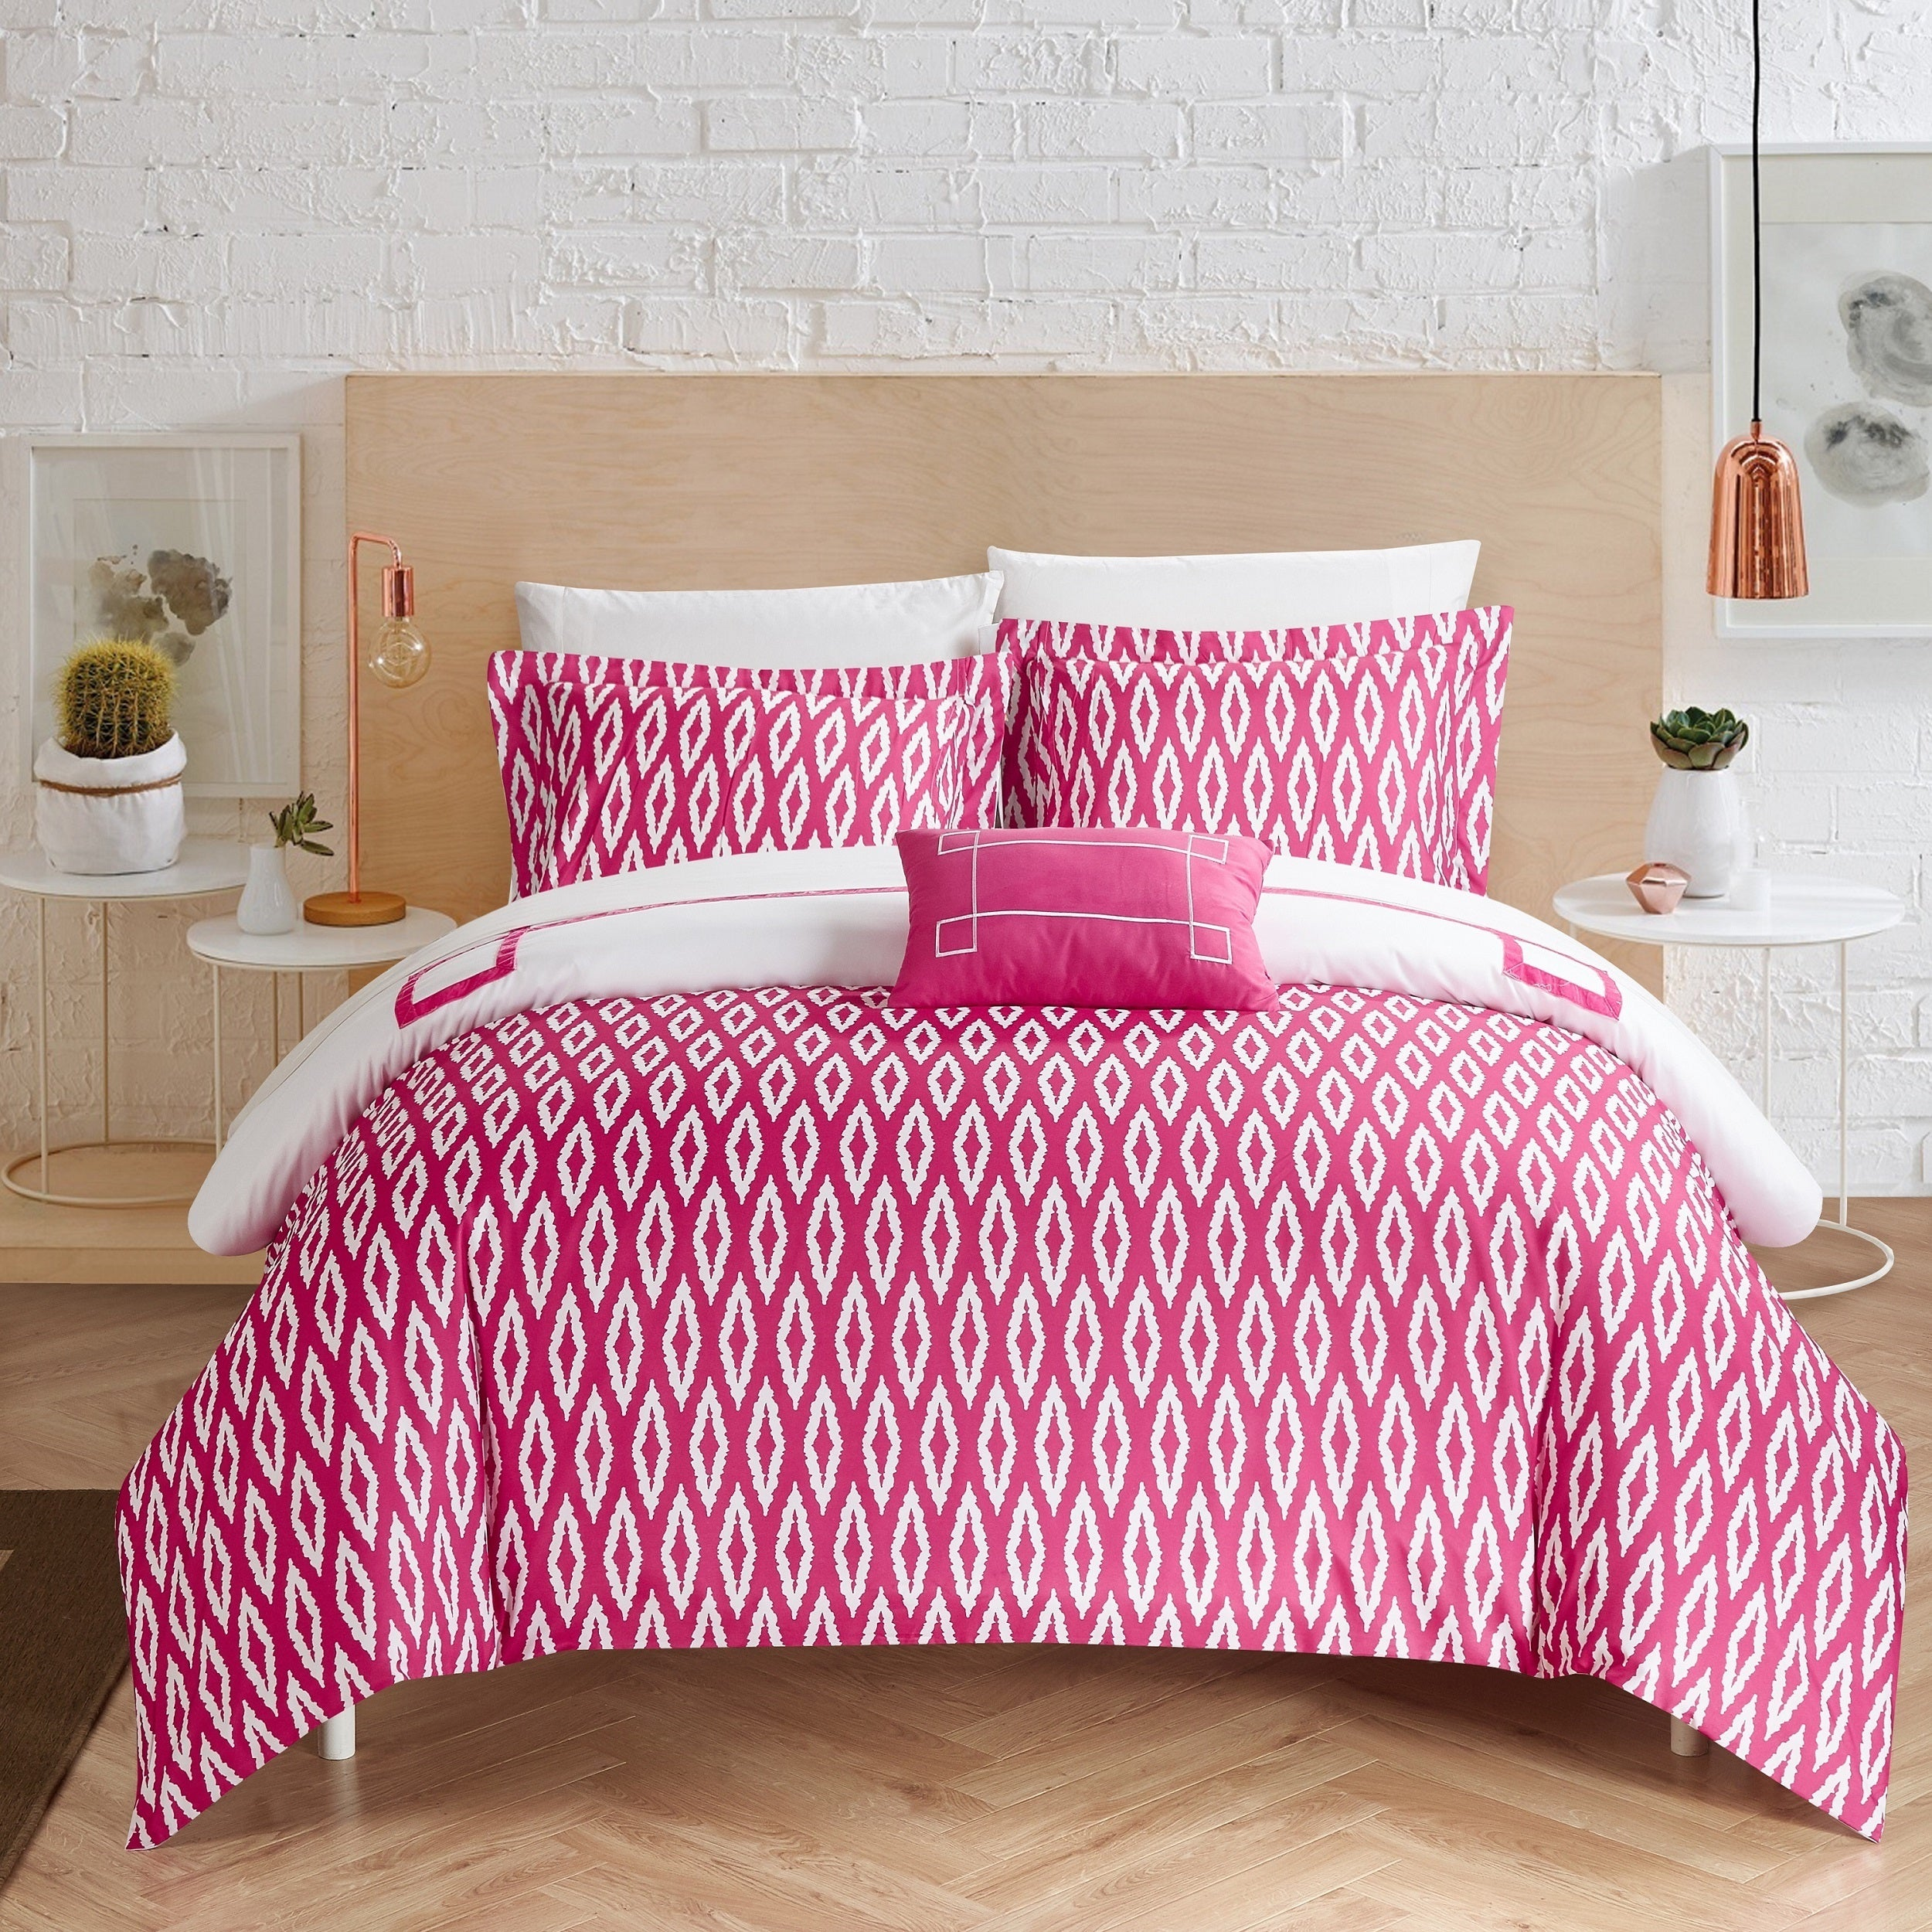 covers pin pink cover floral duvet set stylish quilt modern cerise ruffles colour